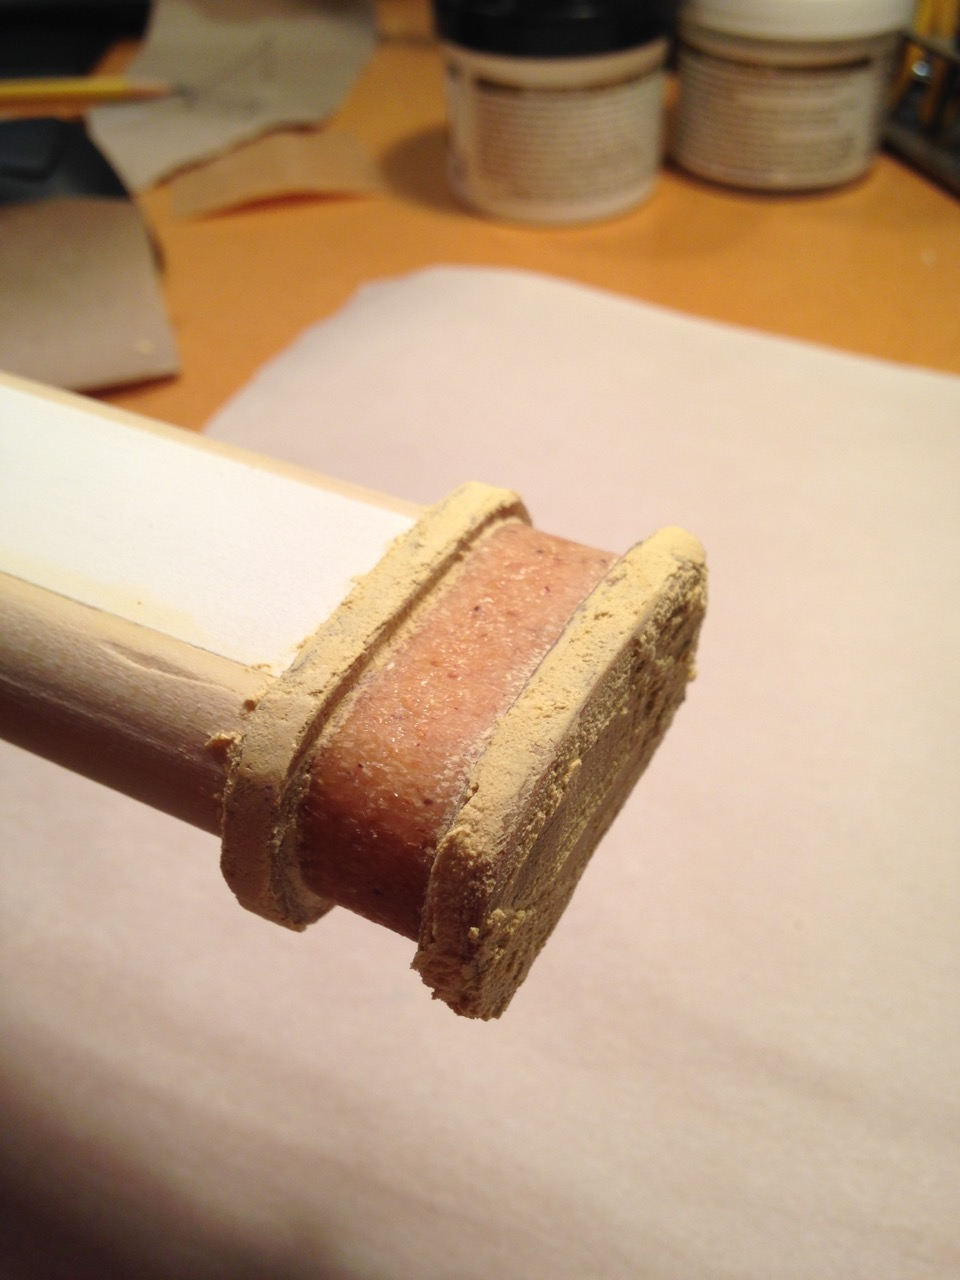 The edges of the collar need to be smooth. Step one of smoothing Worbla: wood filler skim coat.